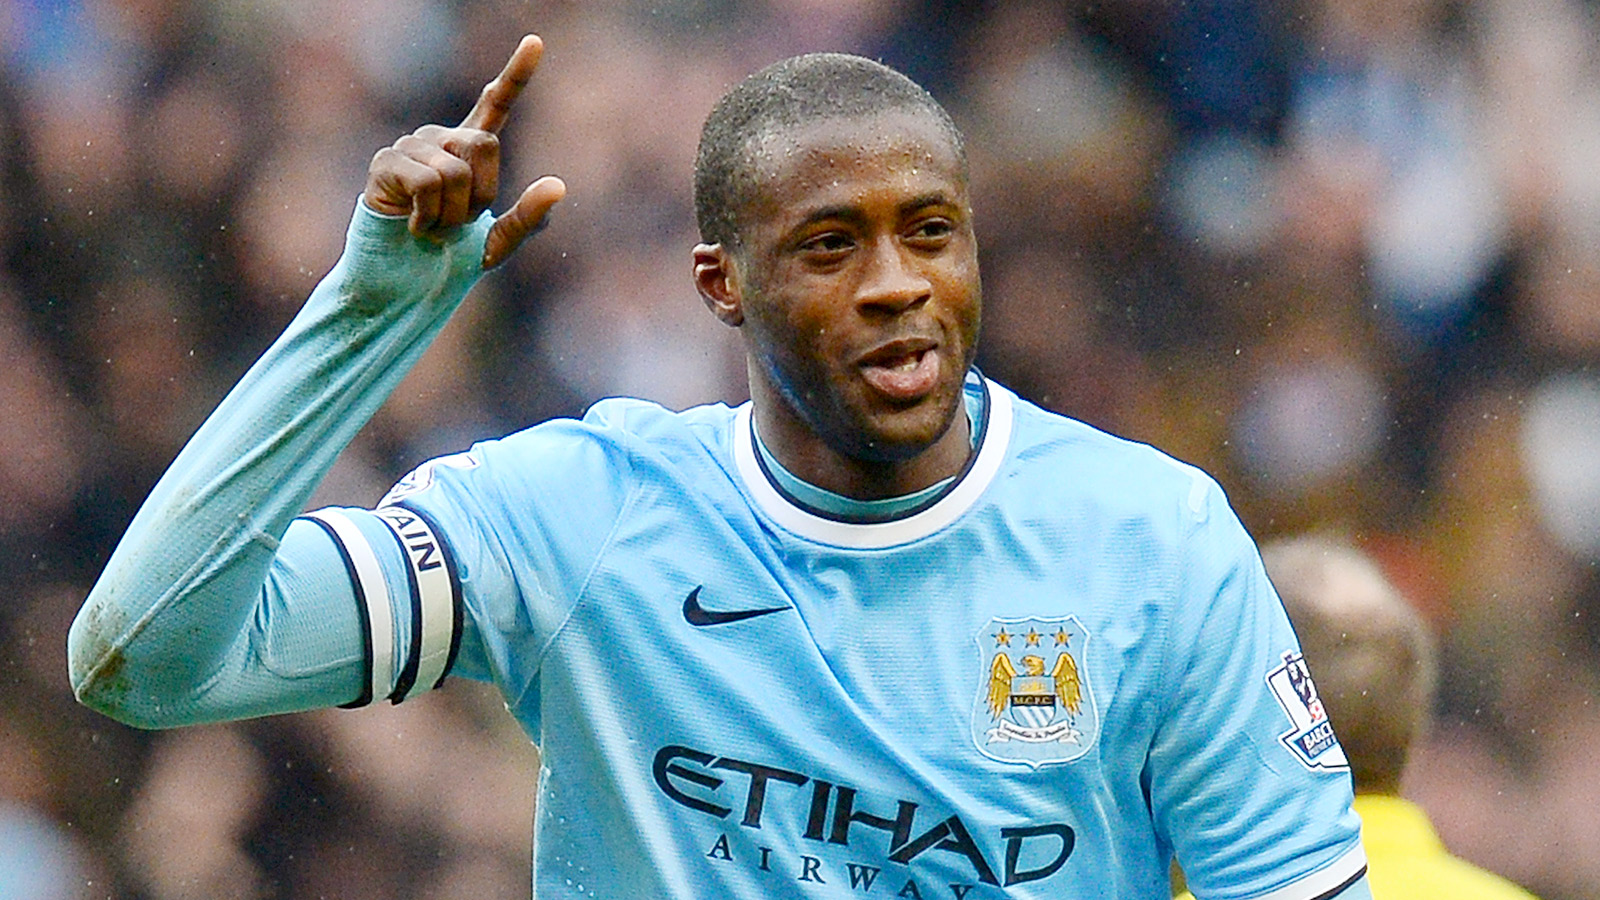 Manchester City's Ivorian midfielder Yaya Toure celebrates after scoring his team's third goal and completing his hattrick during the English Premier League football match between Manchester City and Fulham at the Etihad Stadium in Manchester, northwest England, on March 22, 2014.  AFP PHOTO / ANDREW YATES nnRESTRICTED TO EDITORIAL USE. No use with unauthorized audio, video, data, fixture lists, club/league logos or live services. Online in-match use limited to 45 images, no video emulation. No use in betting, games or single club/league/player publications.        (Photo credit should read ANDREW YATES/AFP/Getty Images)